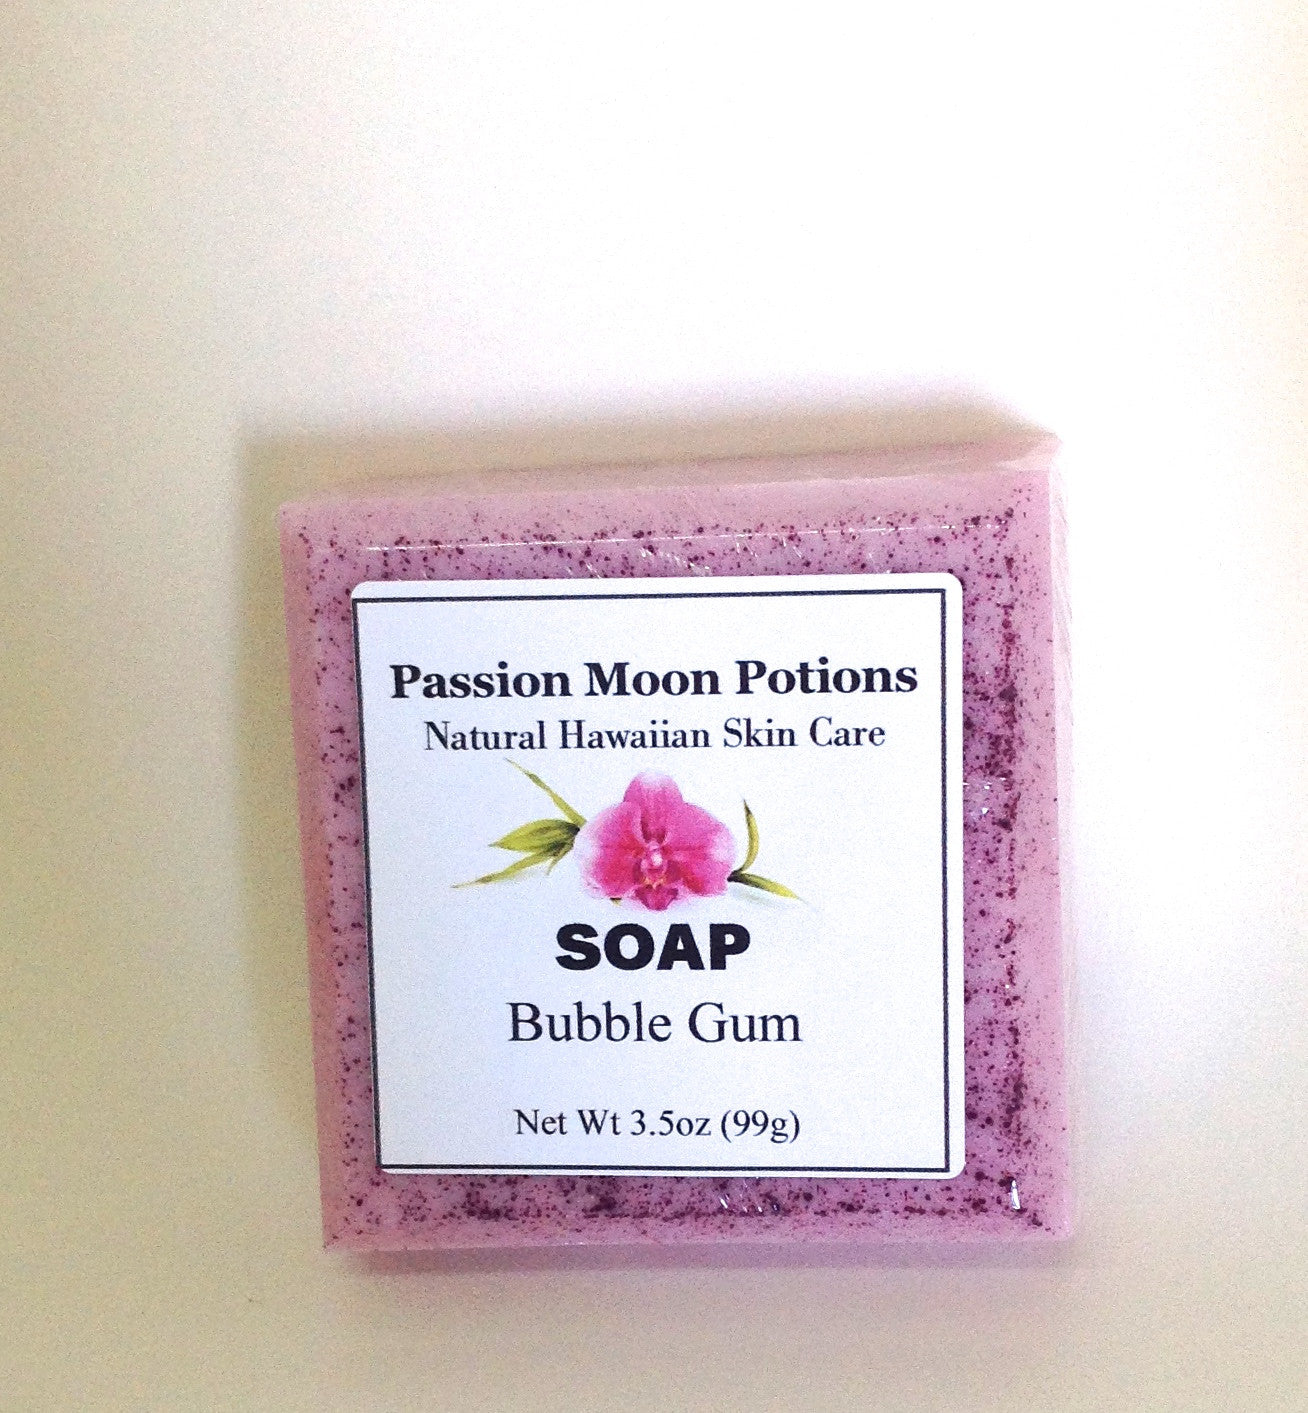 Bubble Gum Soap - Passion Moon Potions - 1